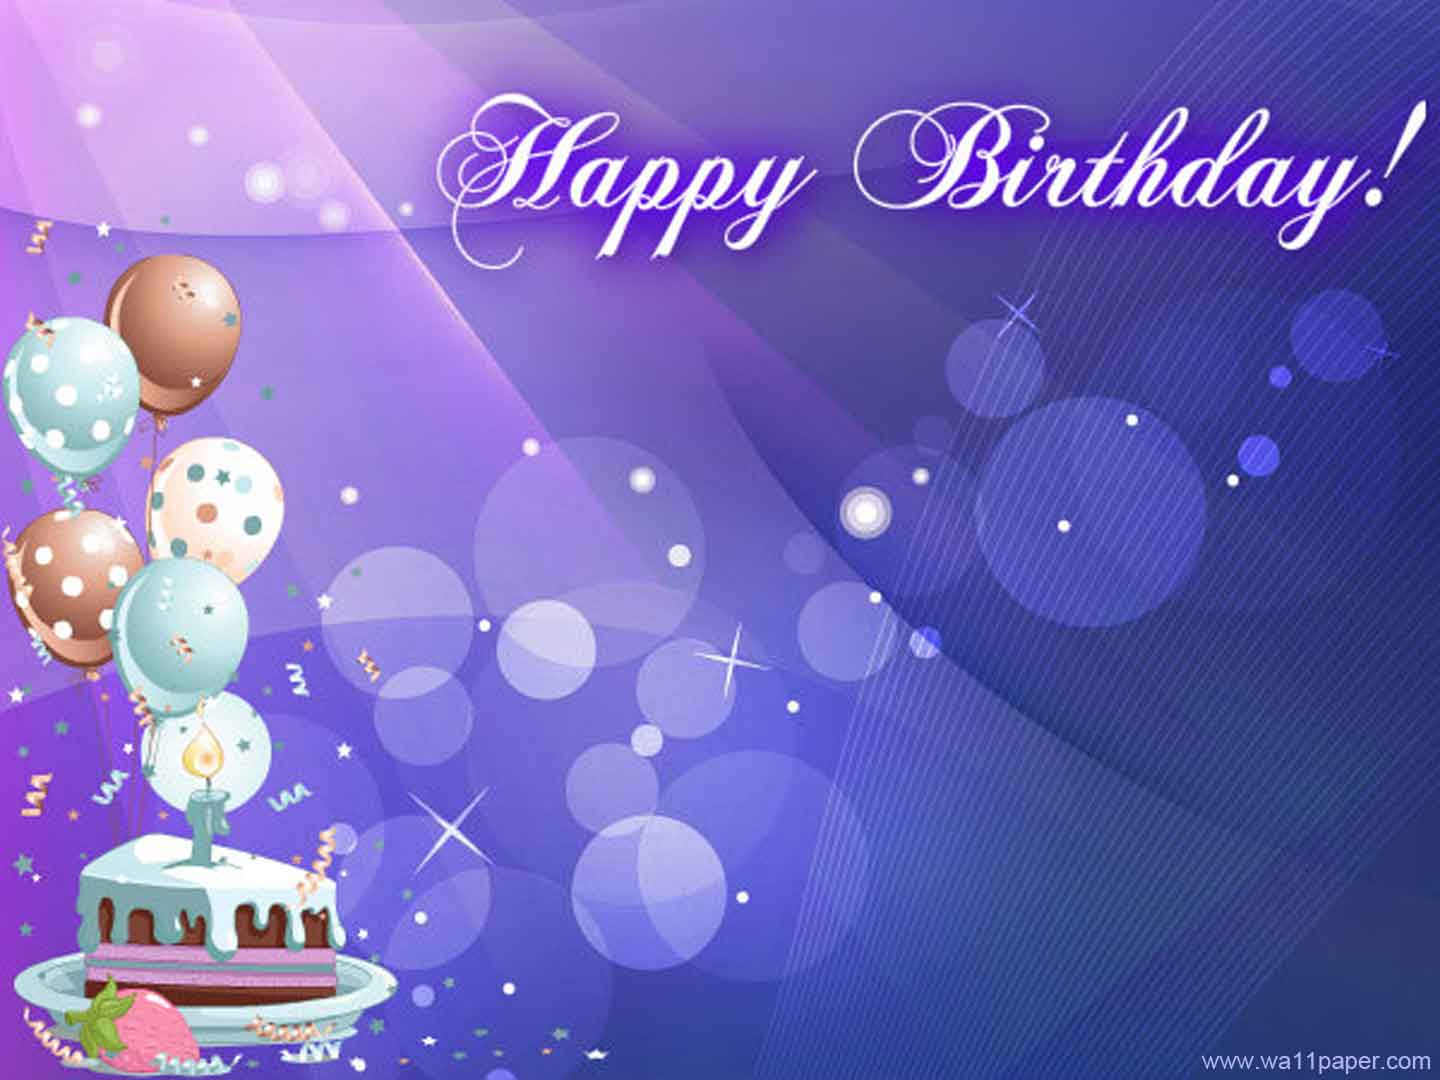 Happy Birhday Wallpaper